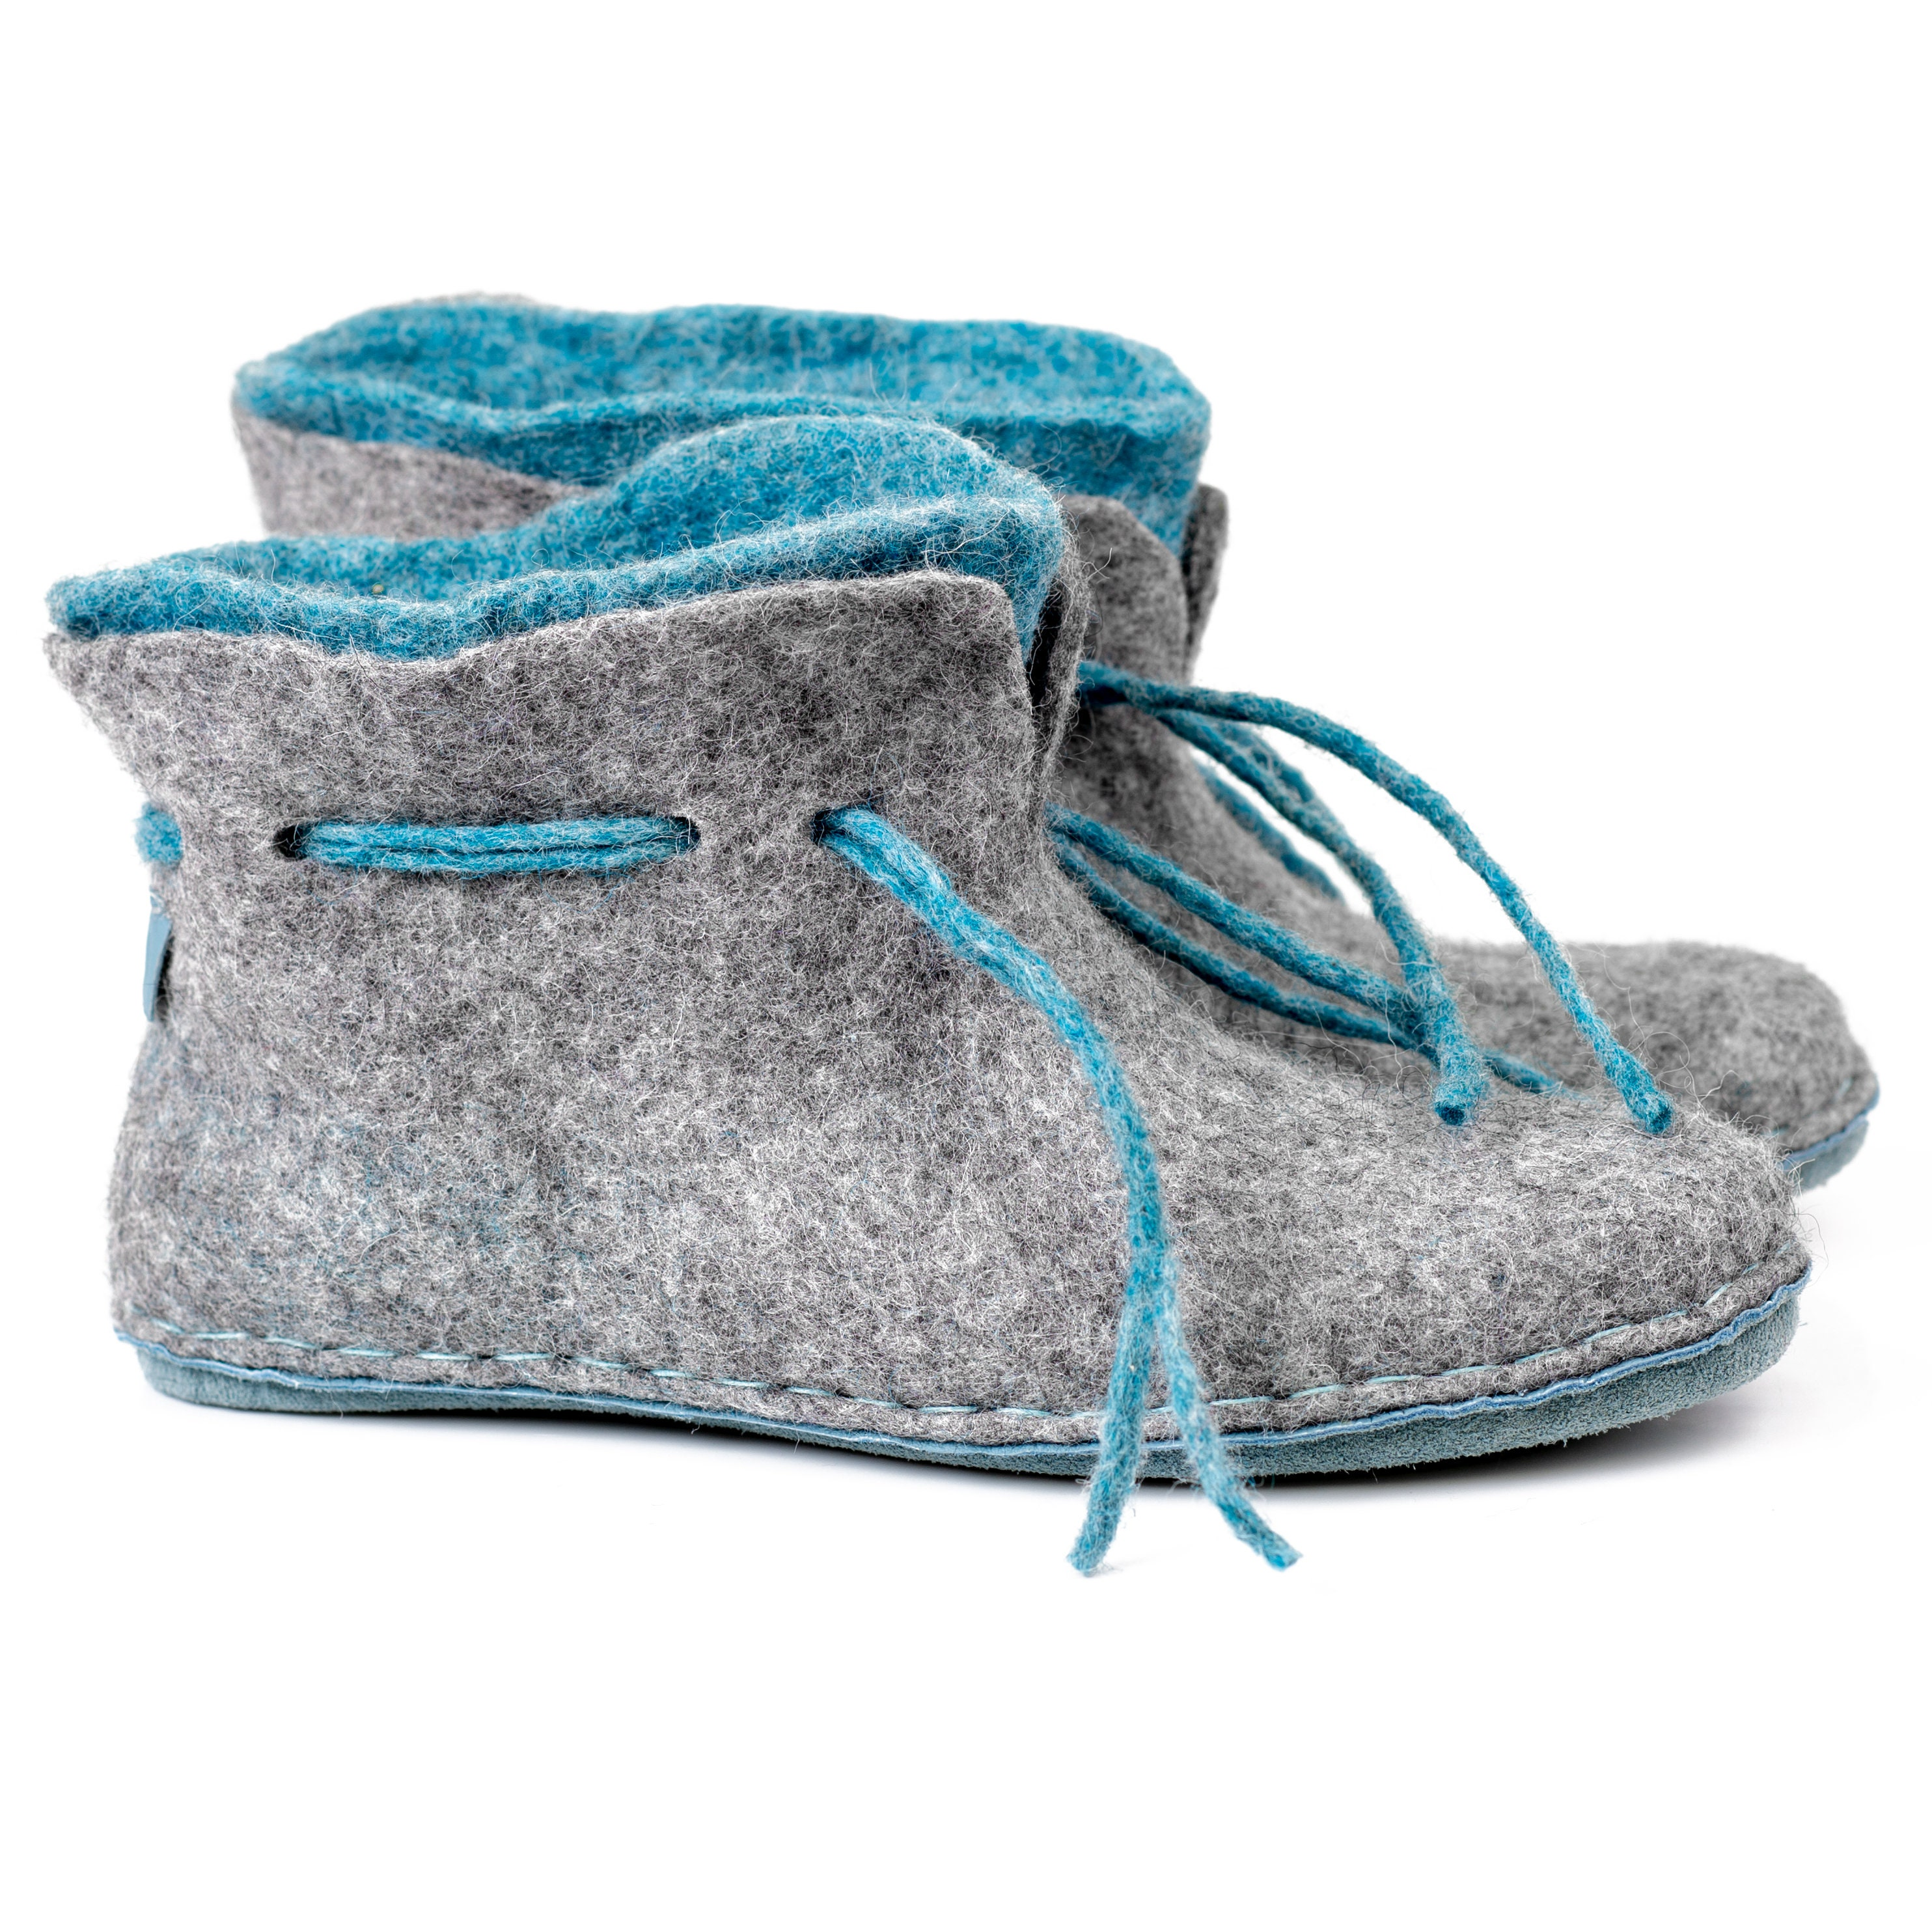 11970fd54c8e9 READY TO SHIP womens size 7 Warm 2 layered blue grey wool ankle ...